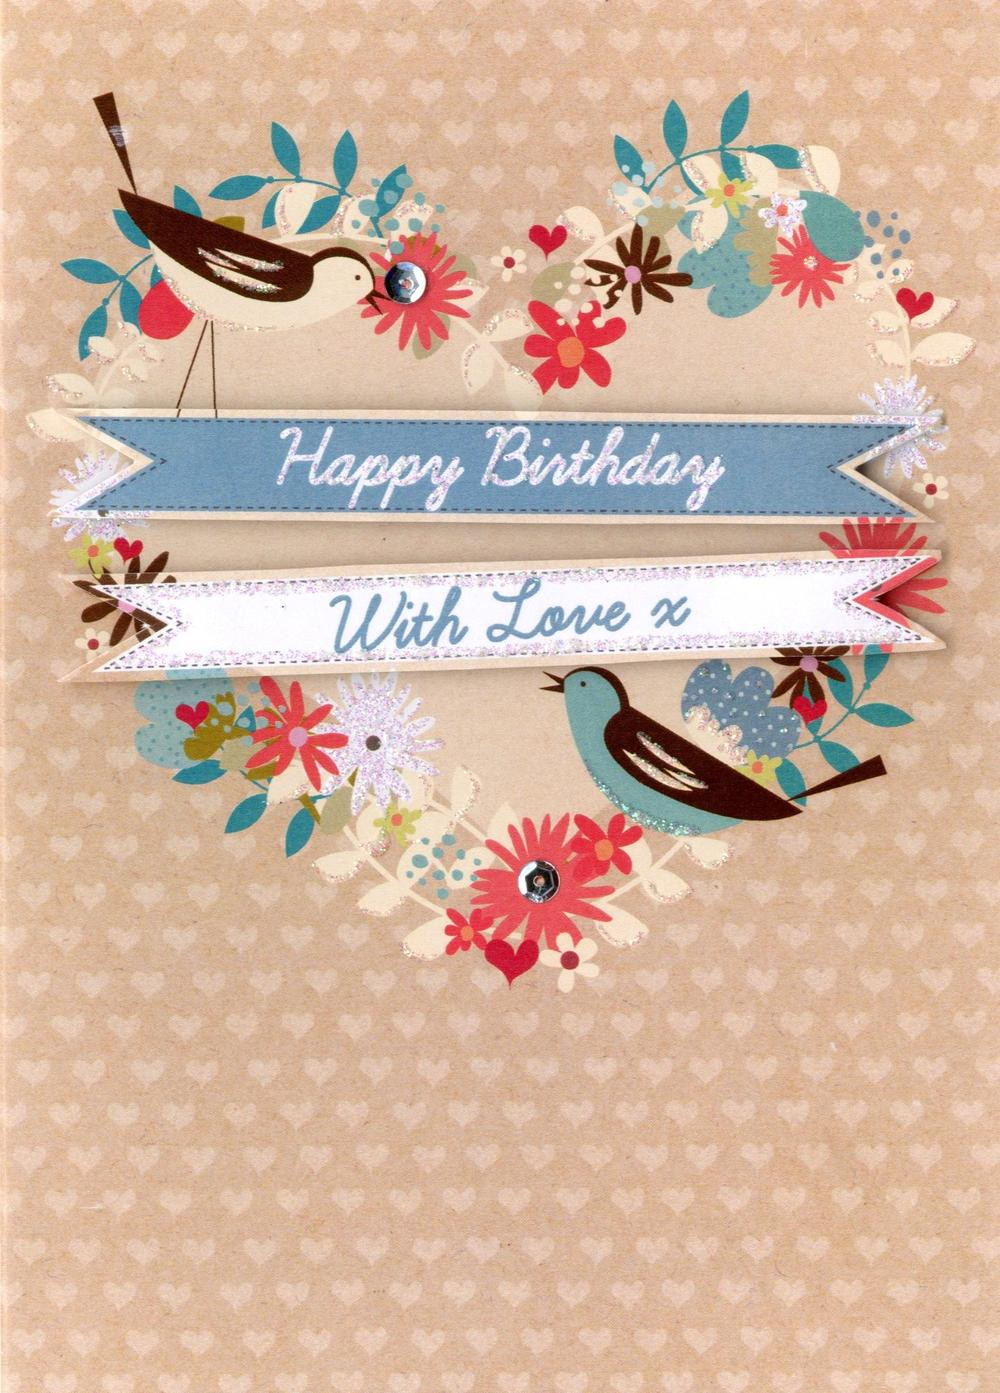 Happy Birthday With Love Greeting Card